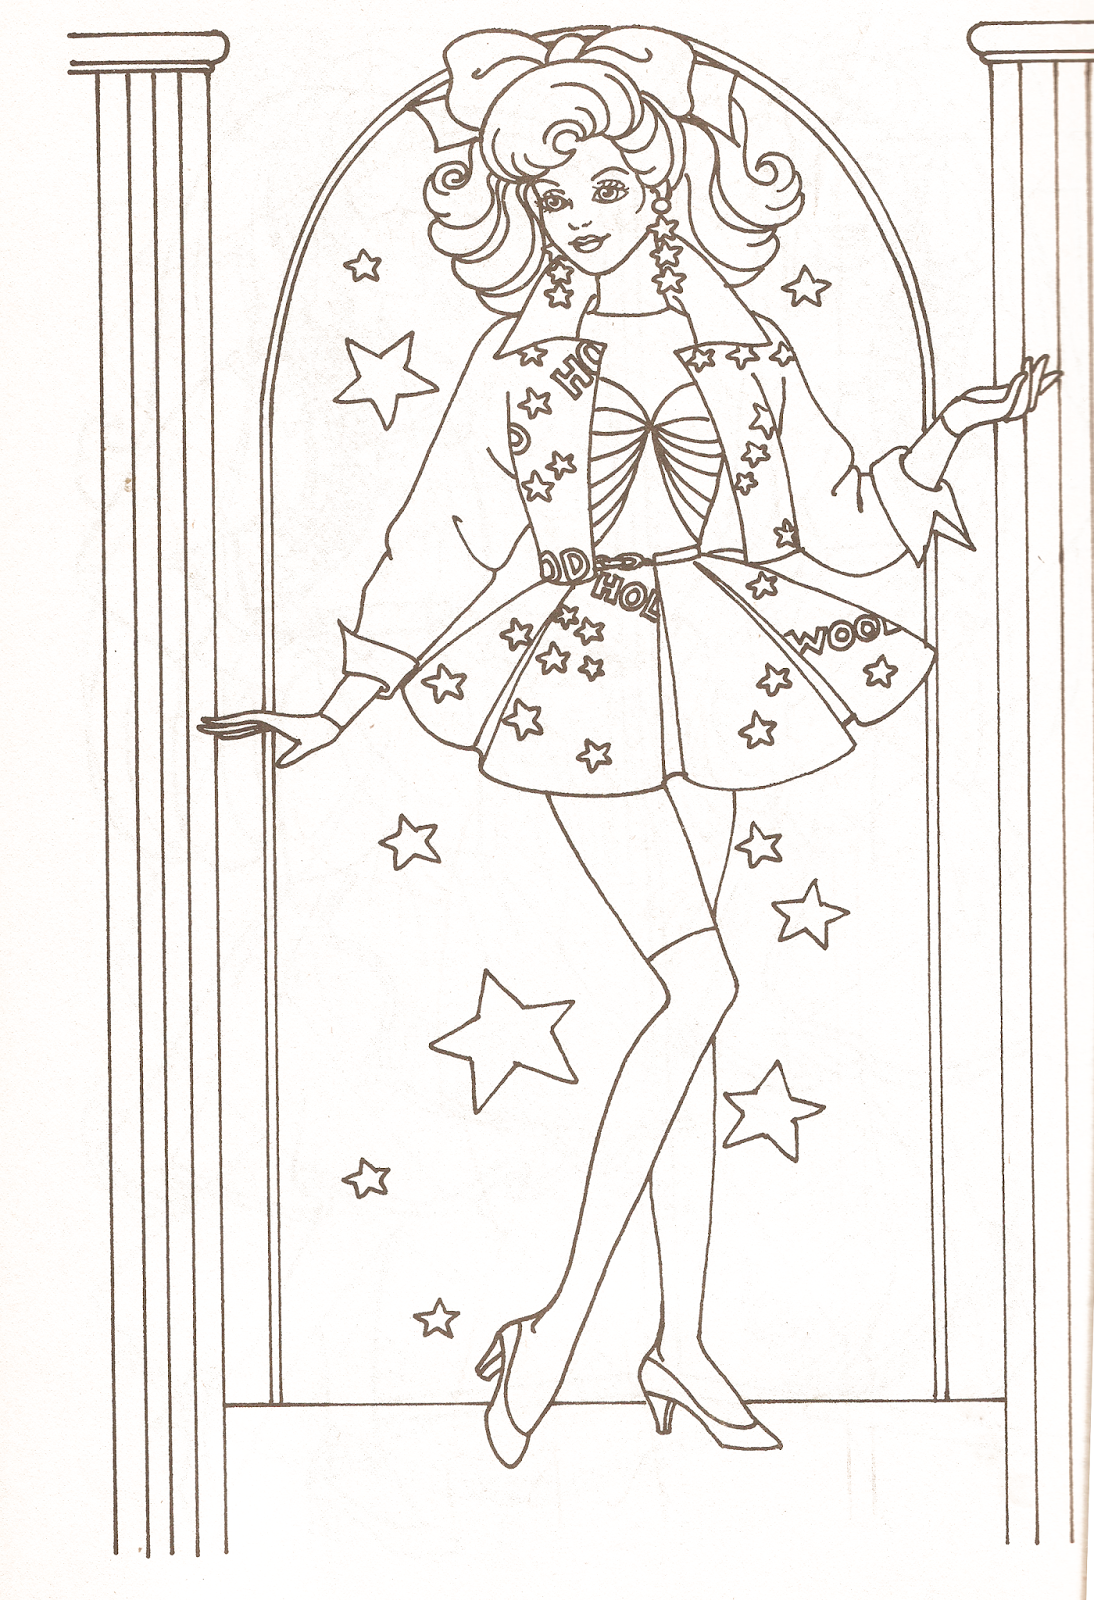 Miss Missy Paper Dolls Barbie Coloring Pages Part 2 Bojanke